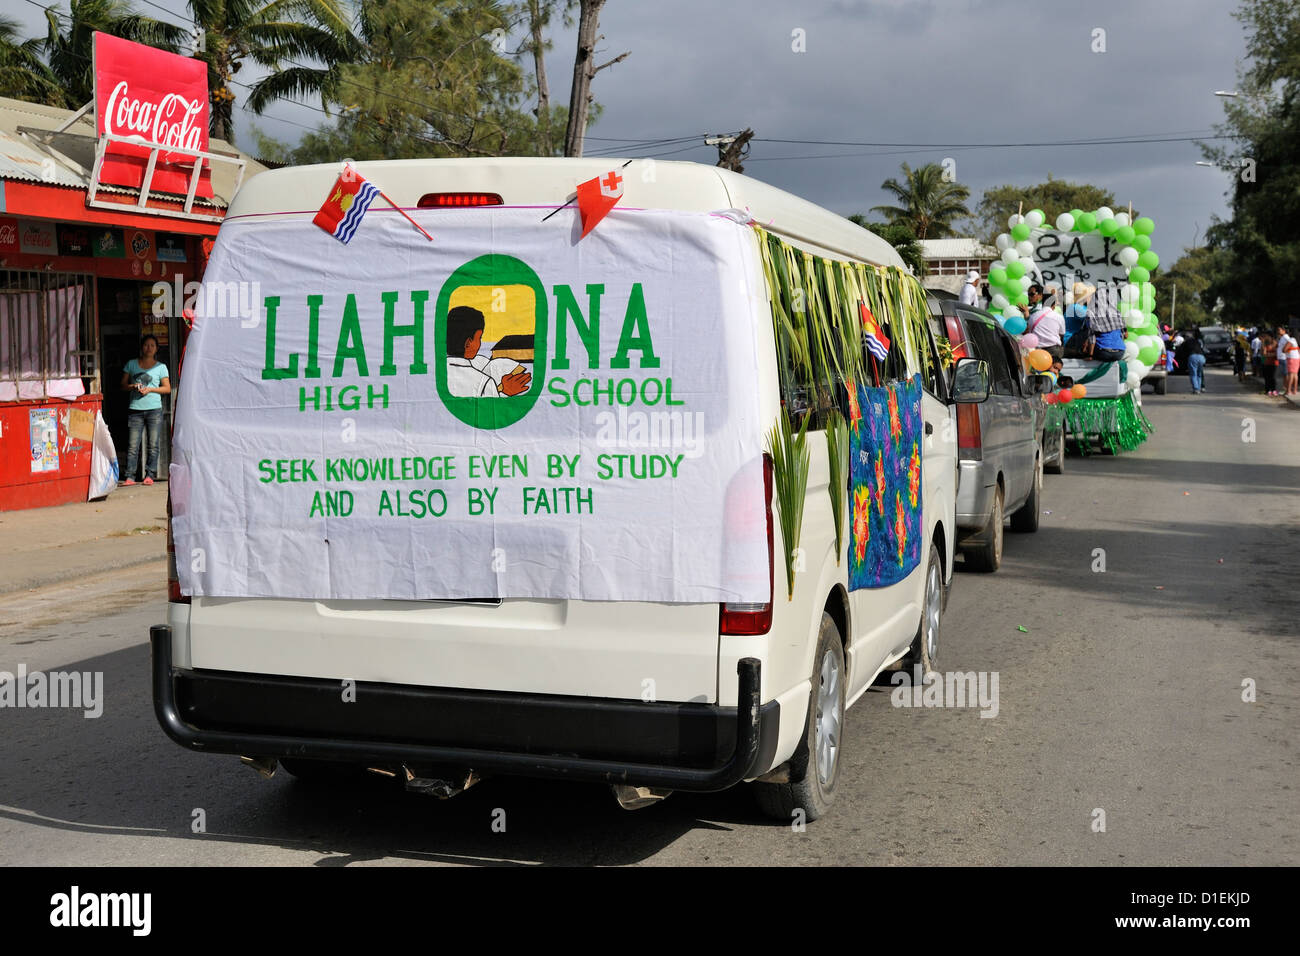 Liahona High School flag on minibus in the Float Parade on the first morning - July 16 - of the 2012 Heilala Festival. - Stock Image